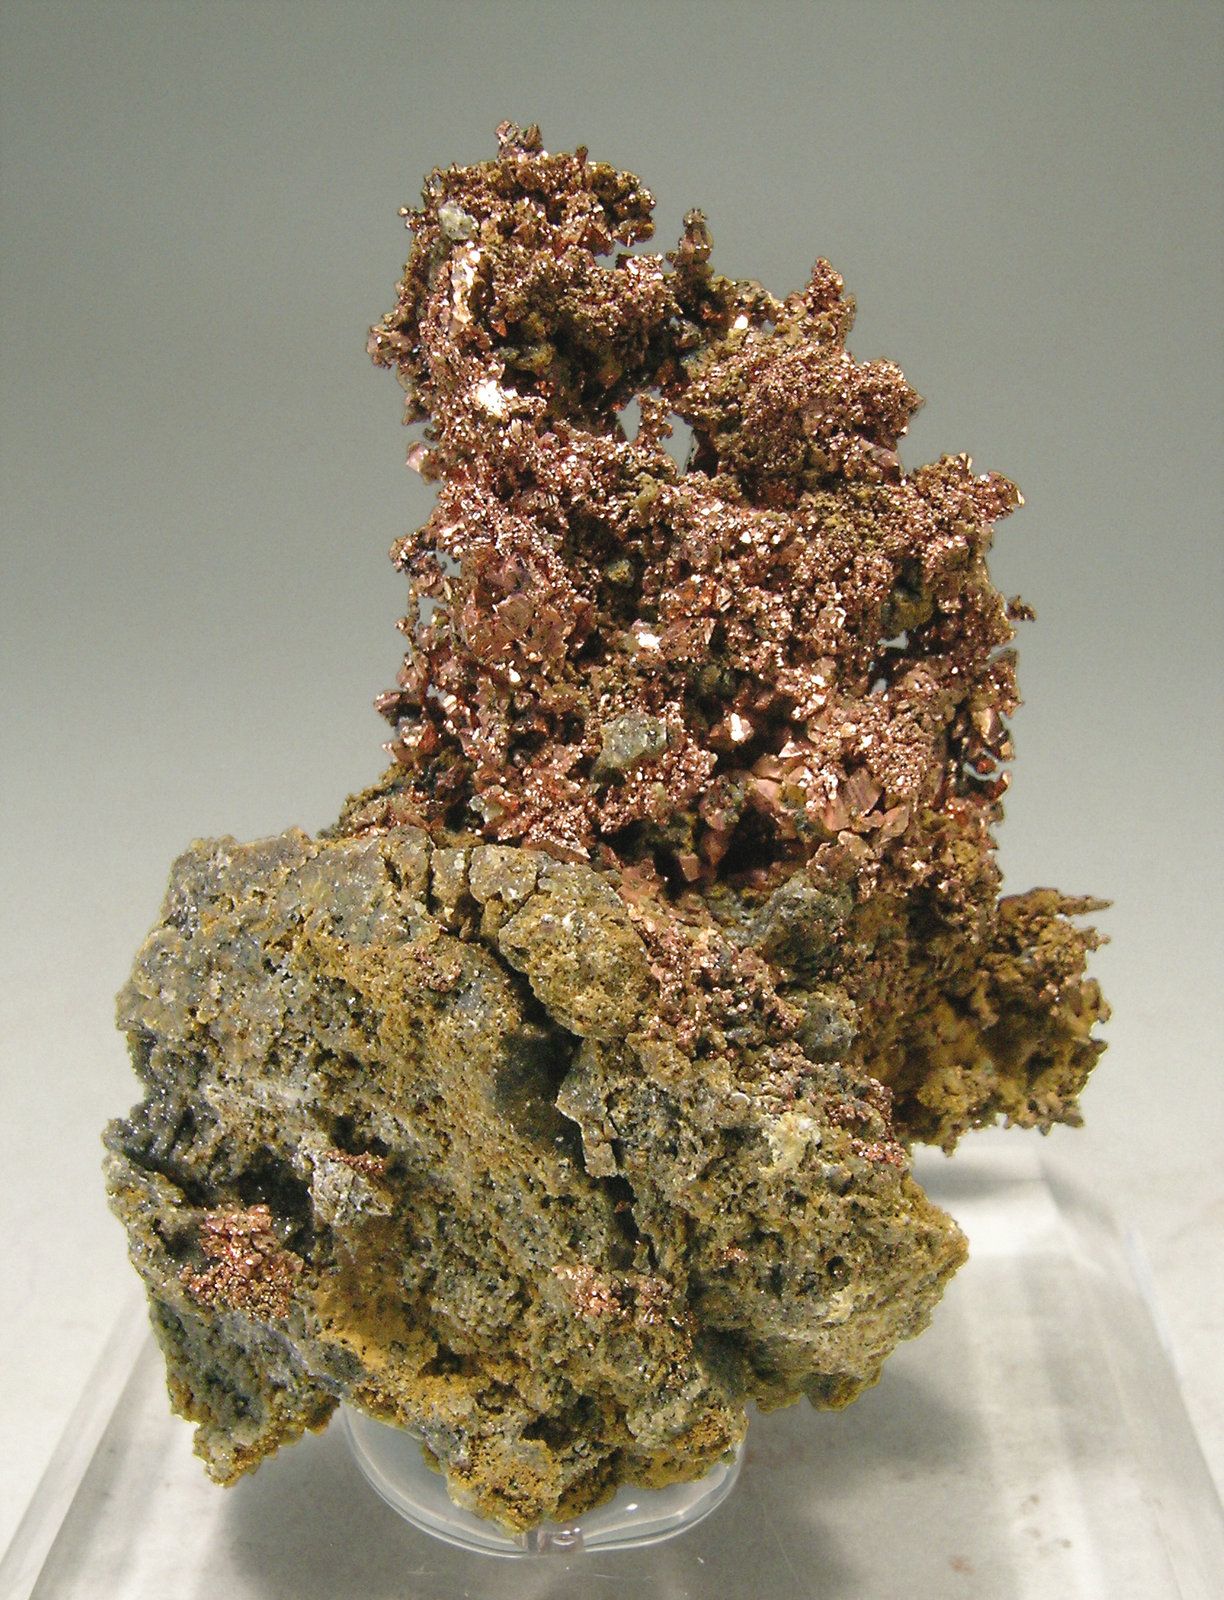 specimens/s_imagesN6/Copper-NE61N6f.jpg